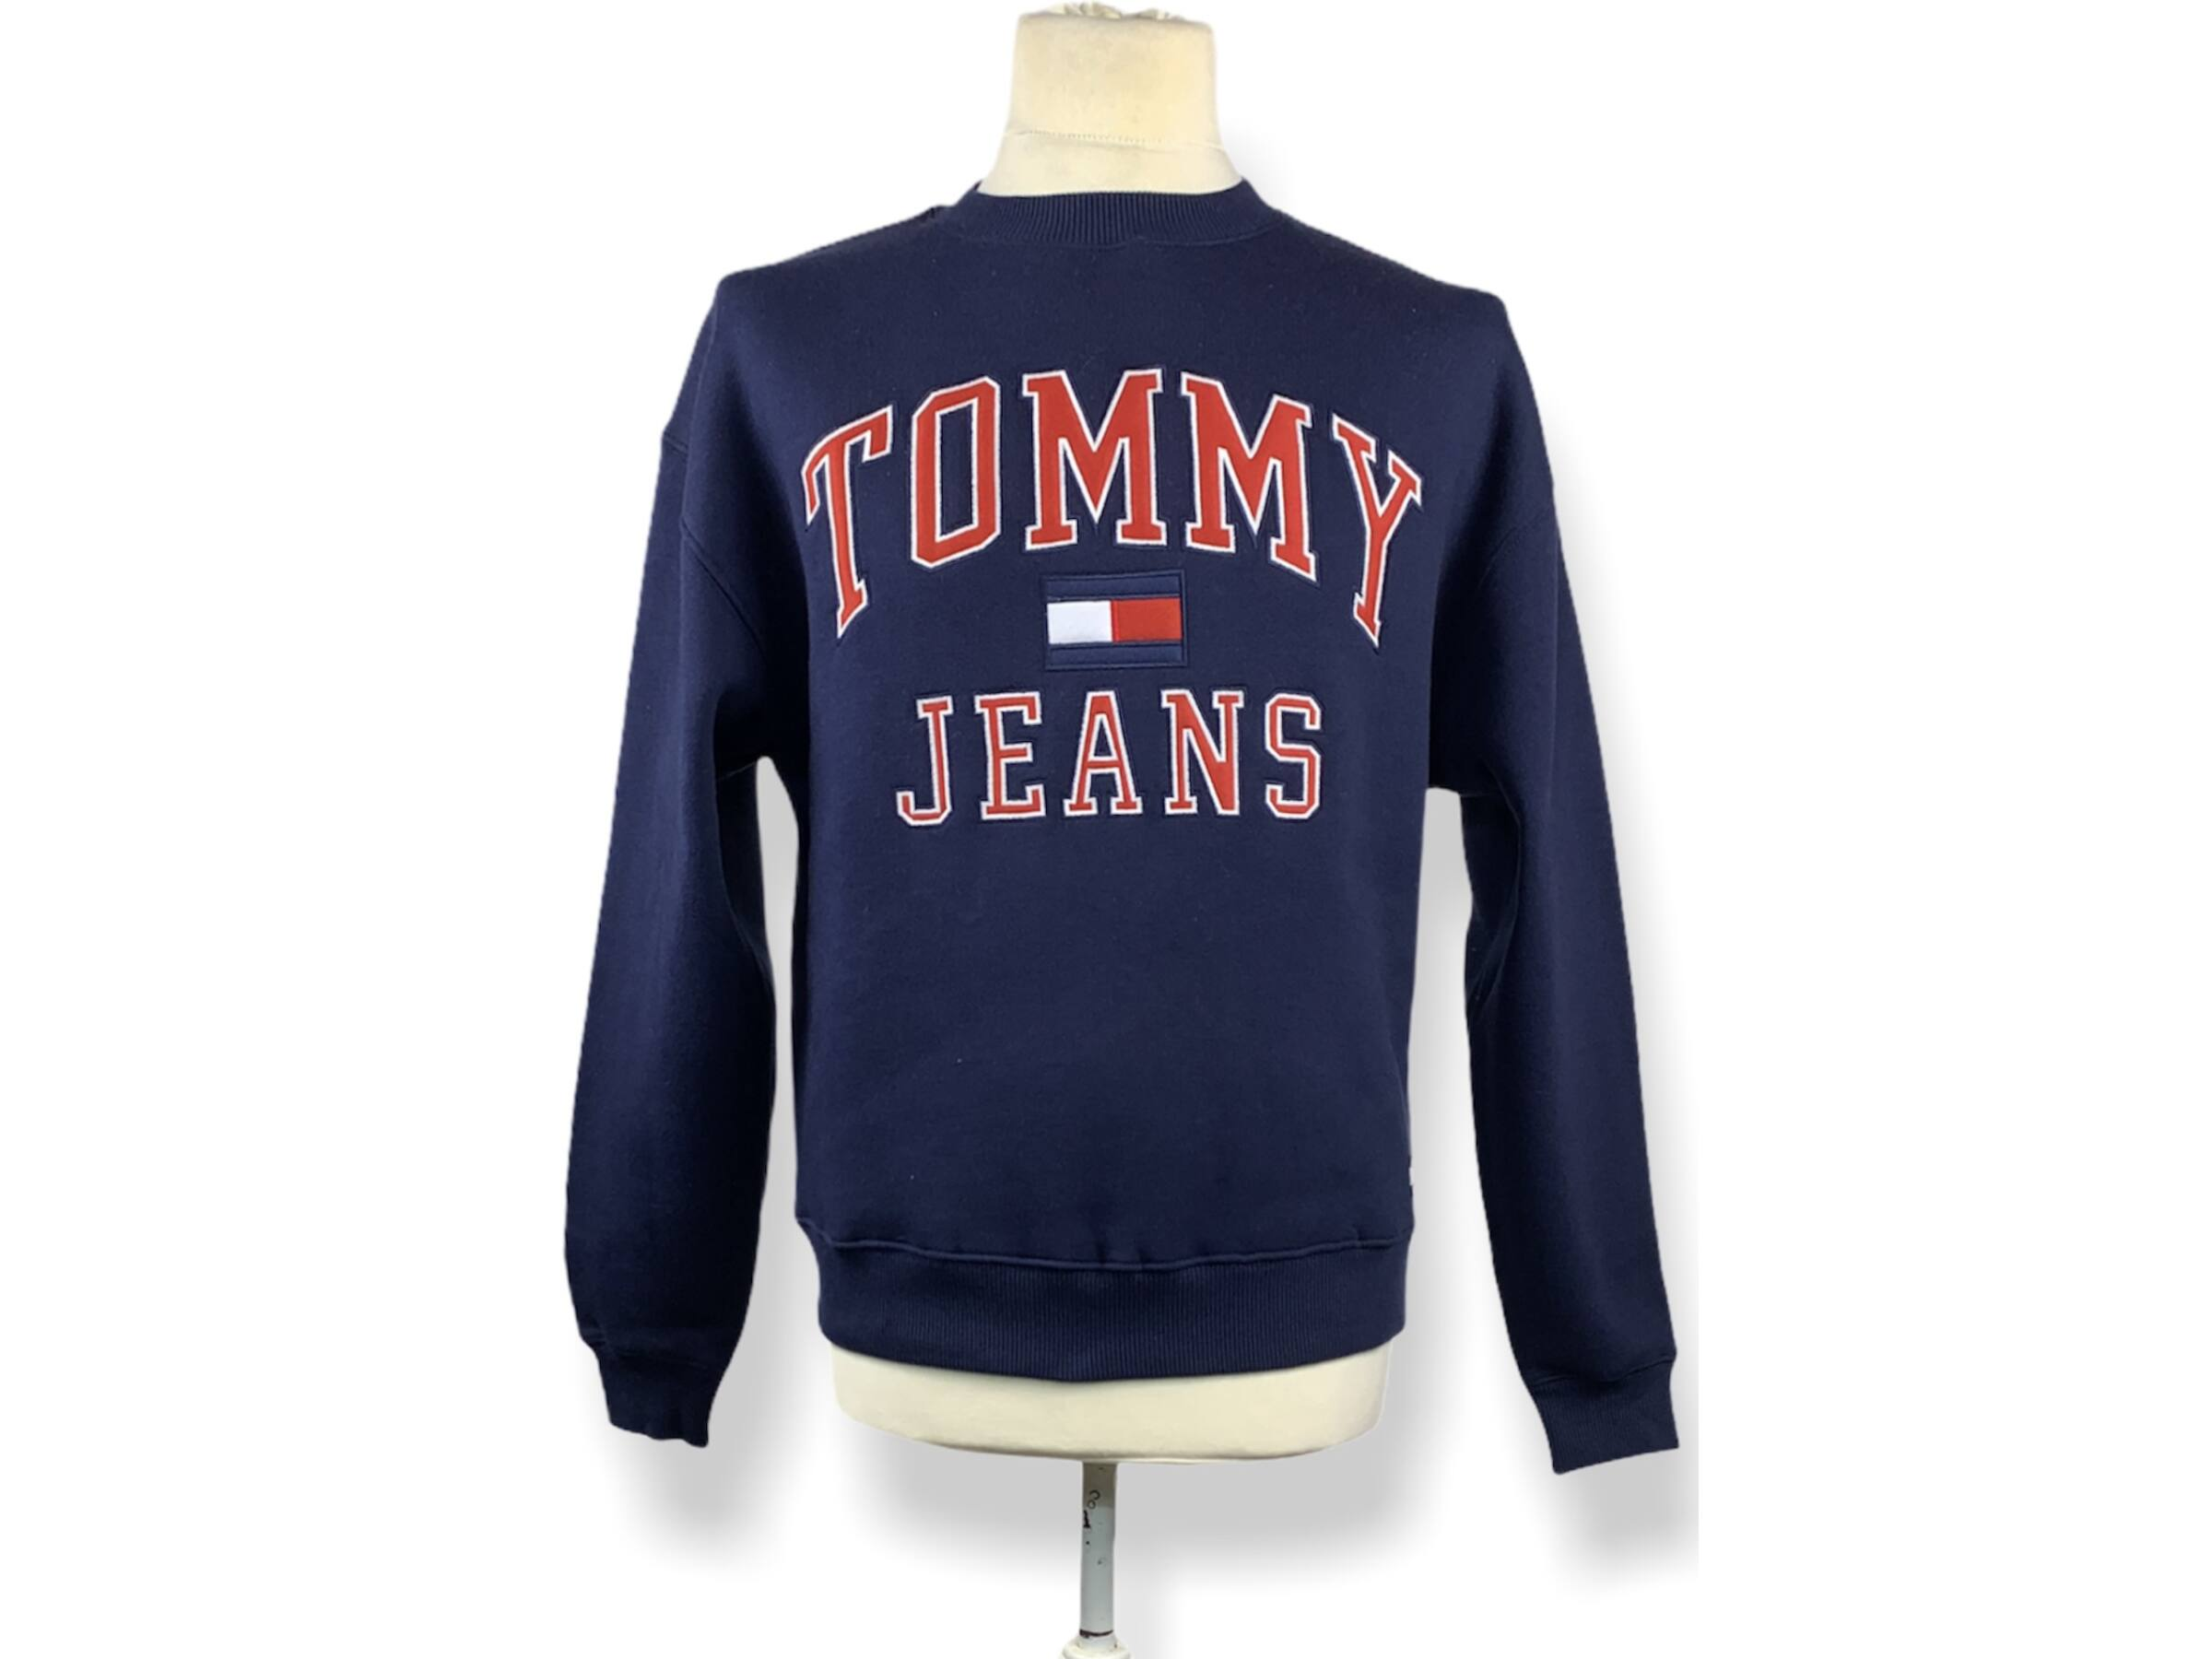 Tommy Jeans pulóver (XS)